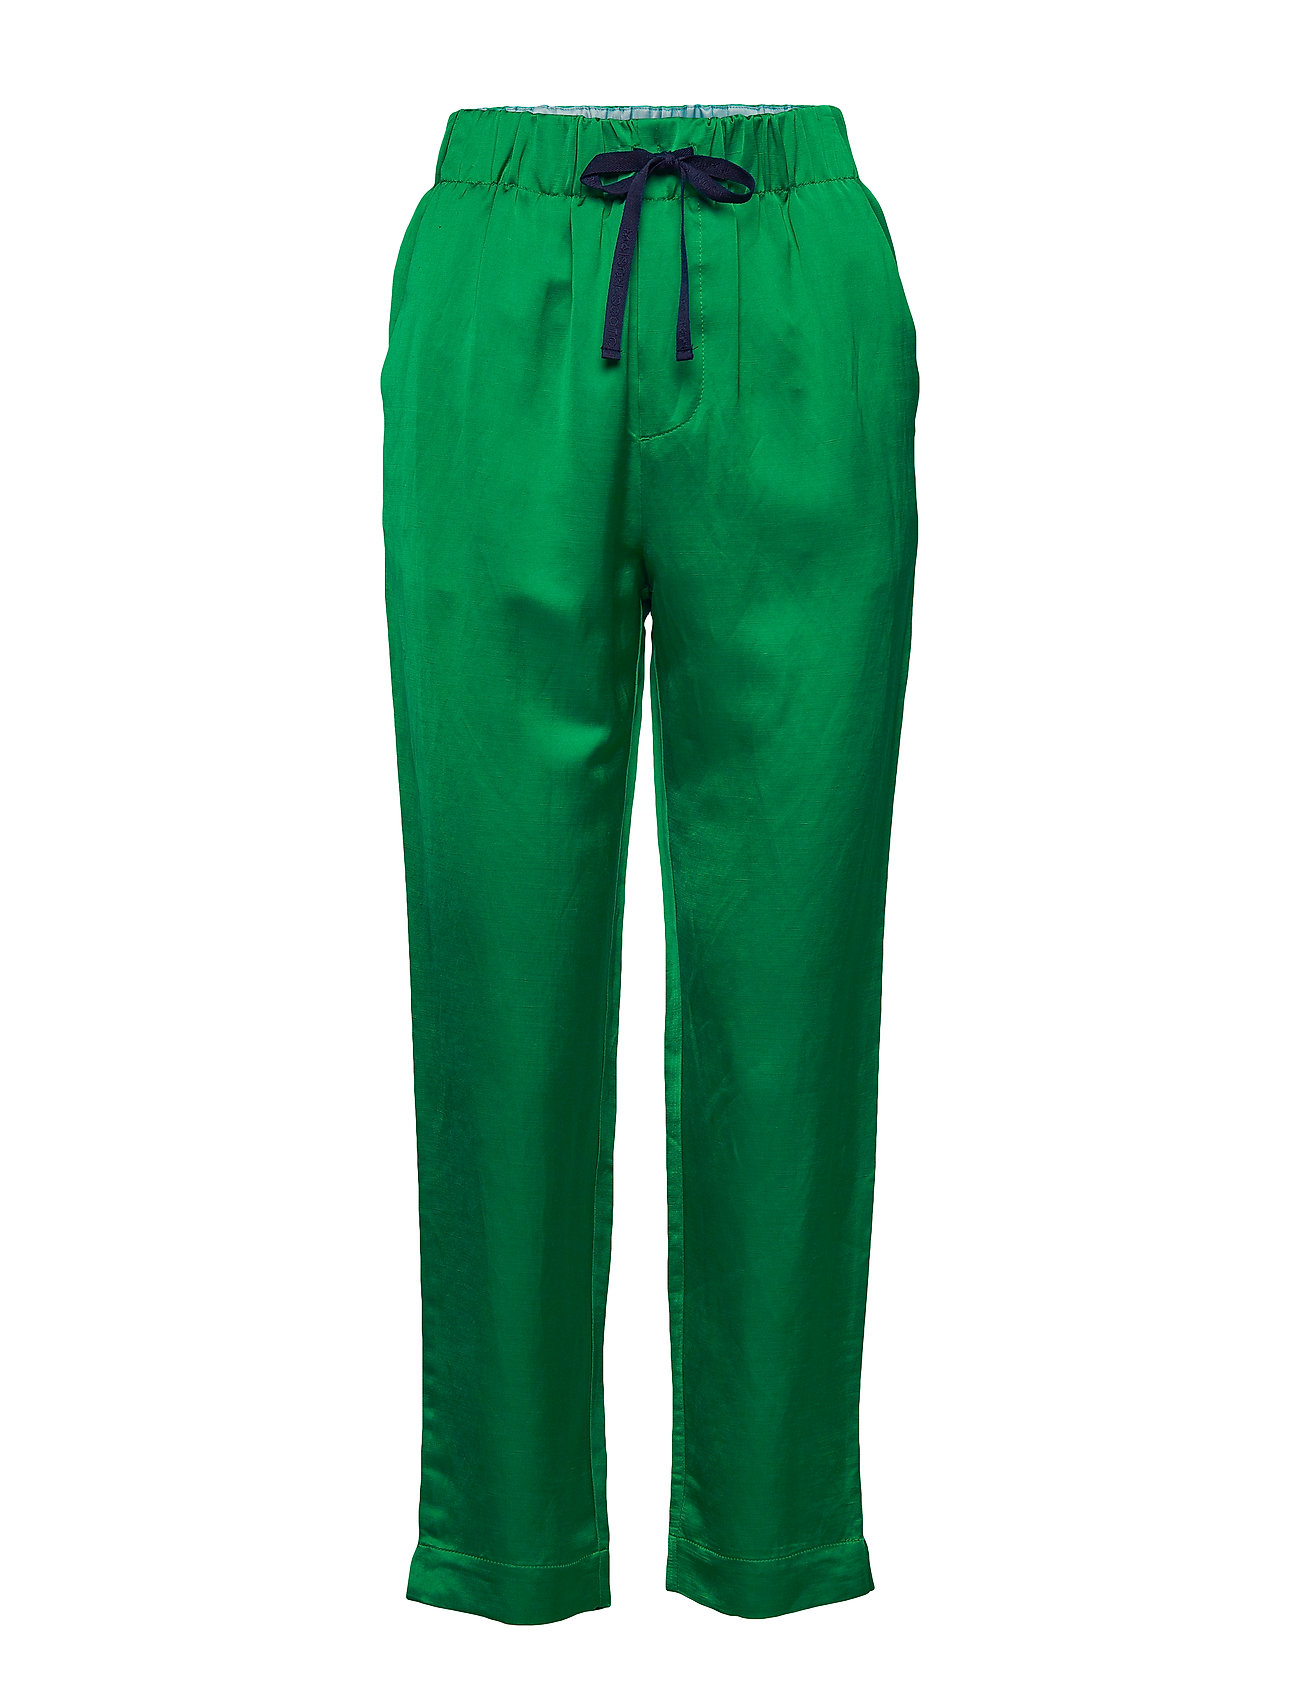 Scotch & Soda Tailored jogger pants in viscose-linen quality - PALM GREEN